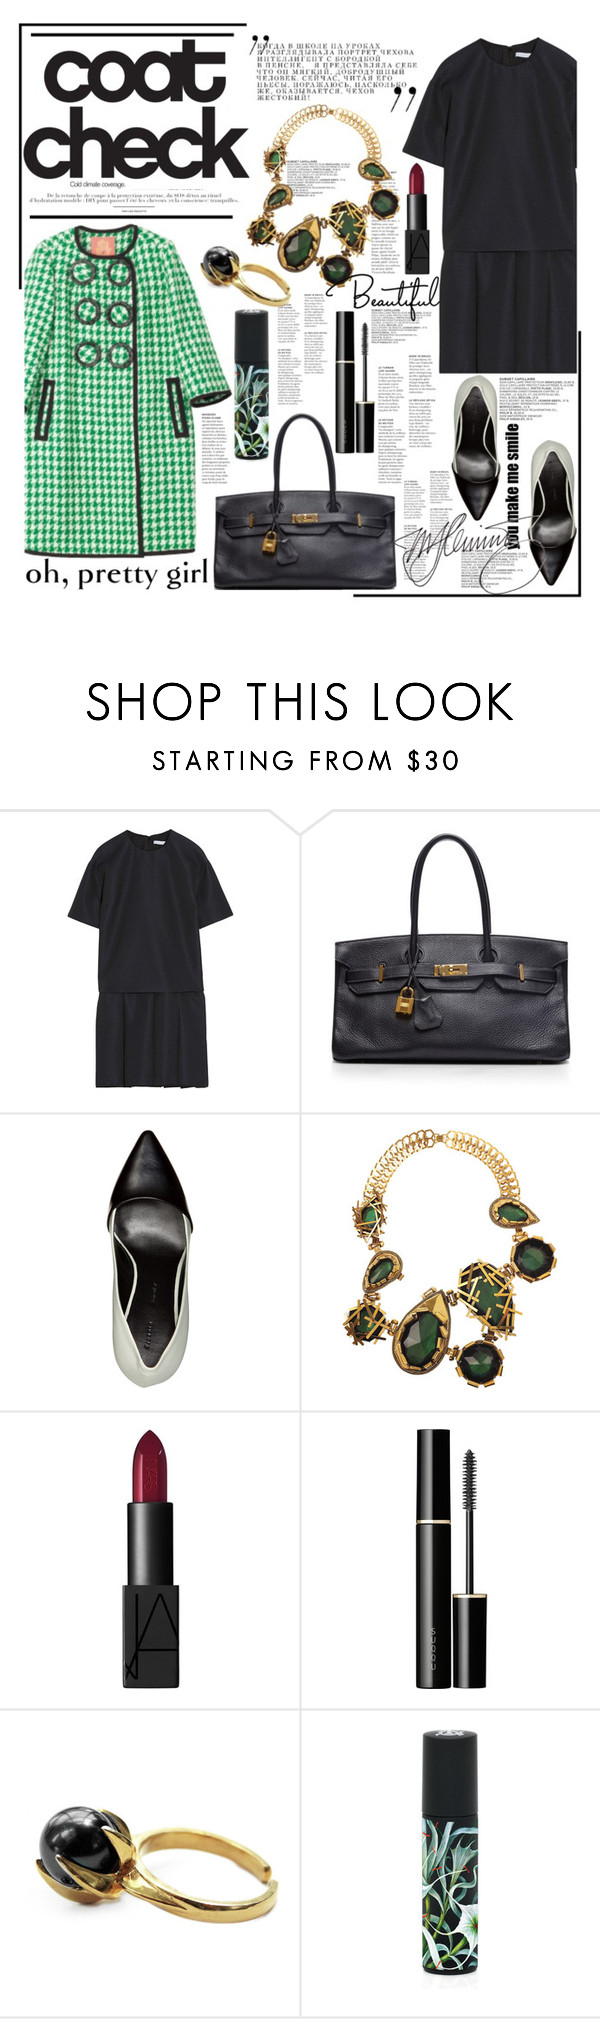 """check mate."" by mercimasada ❤ liked on Polyvore featuring Victoria, Victoria Beckham, Manoush, Hermès, Proenza Schouler, Erickson Beamon, SUQQU, ELYONA, Nest Fragrances, vintage and classic"